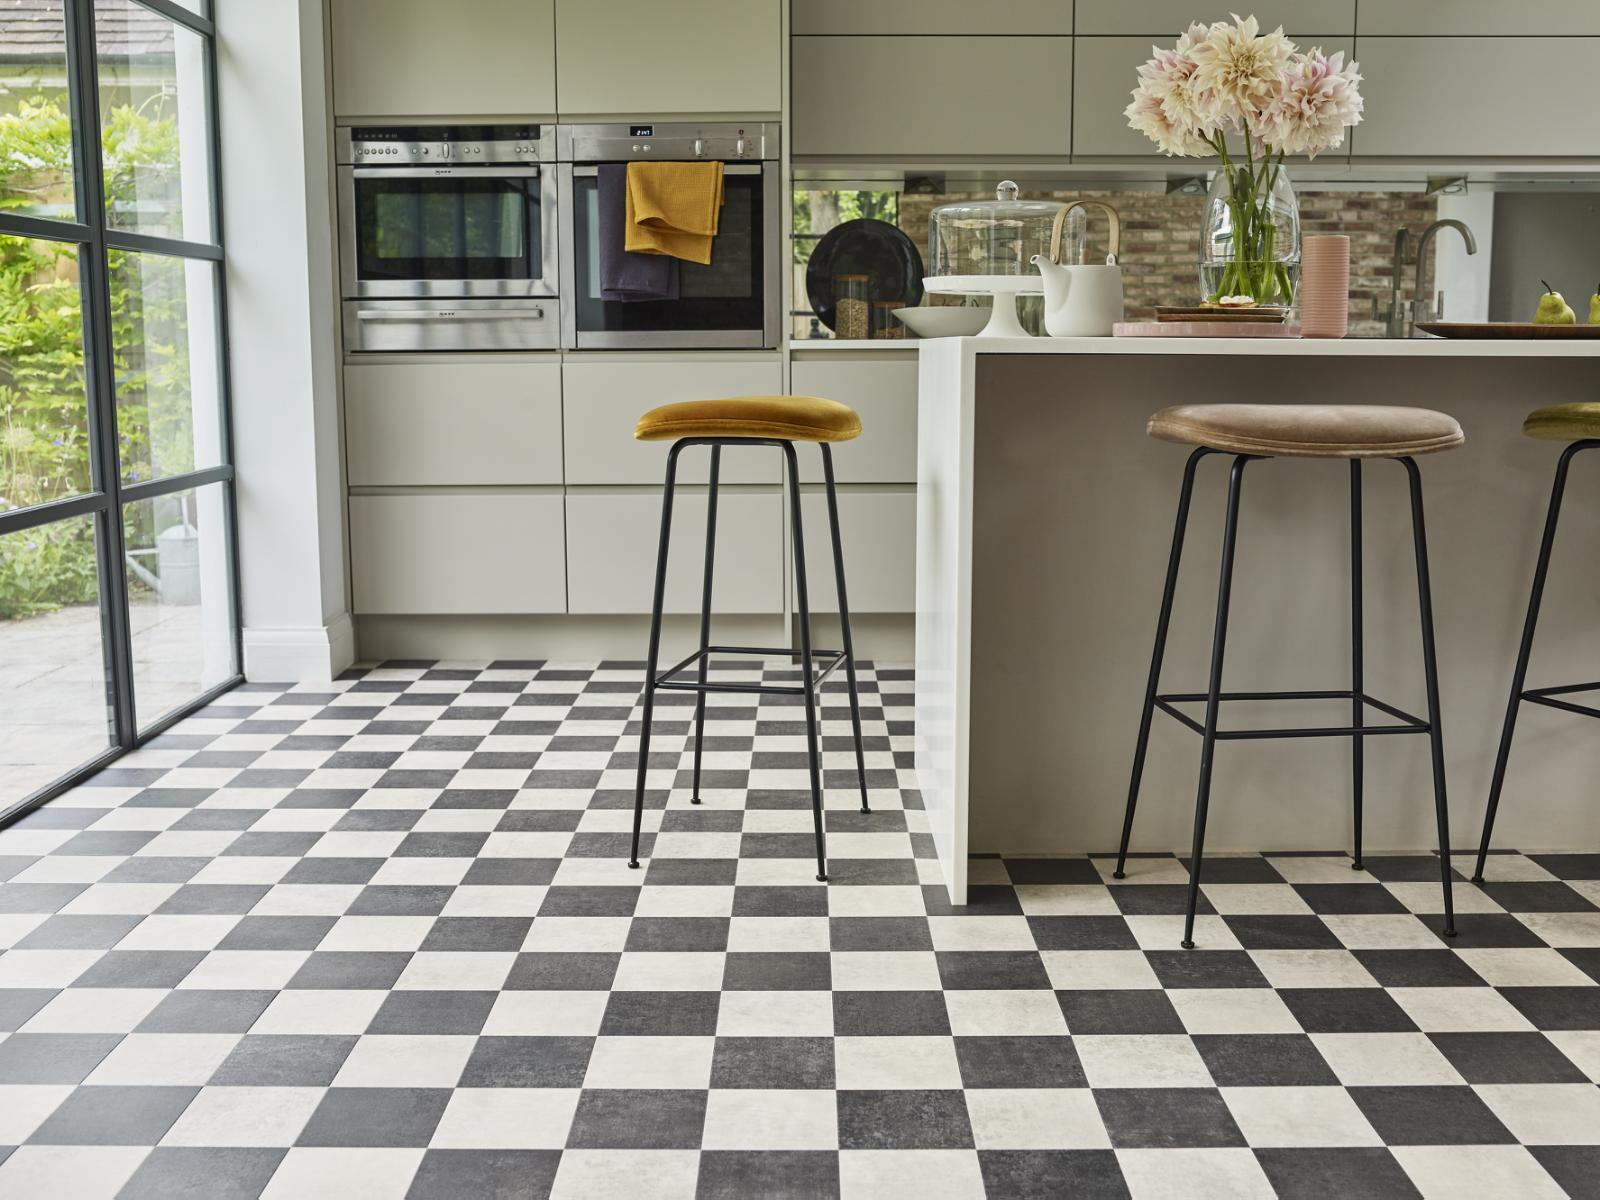 A kitchen with black and white tiles  Description automatically generated with medium confidence